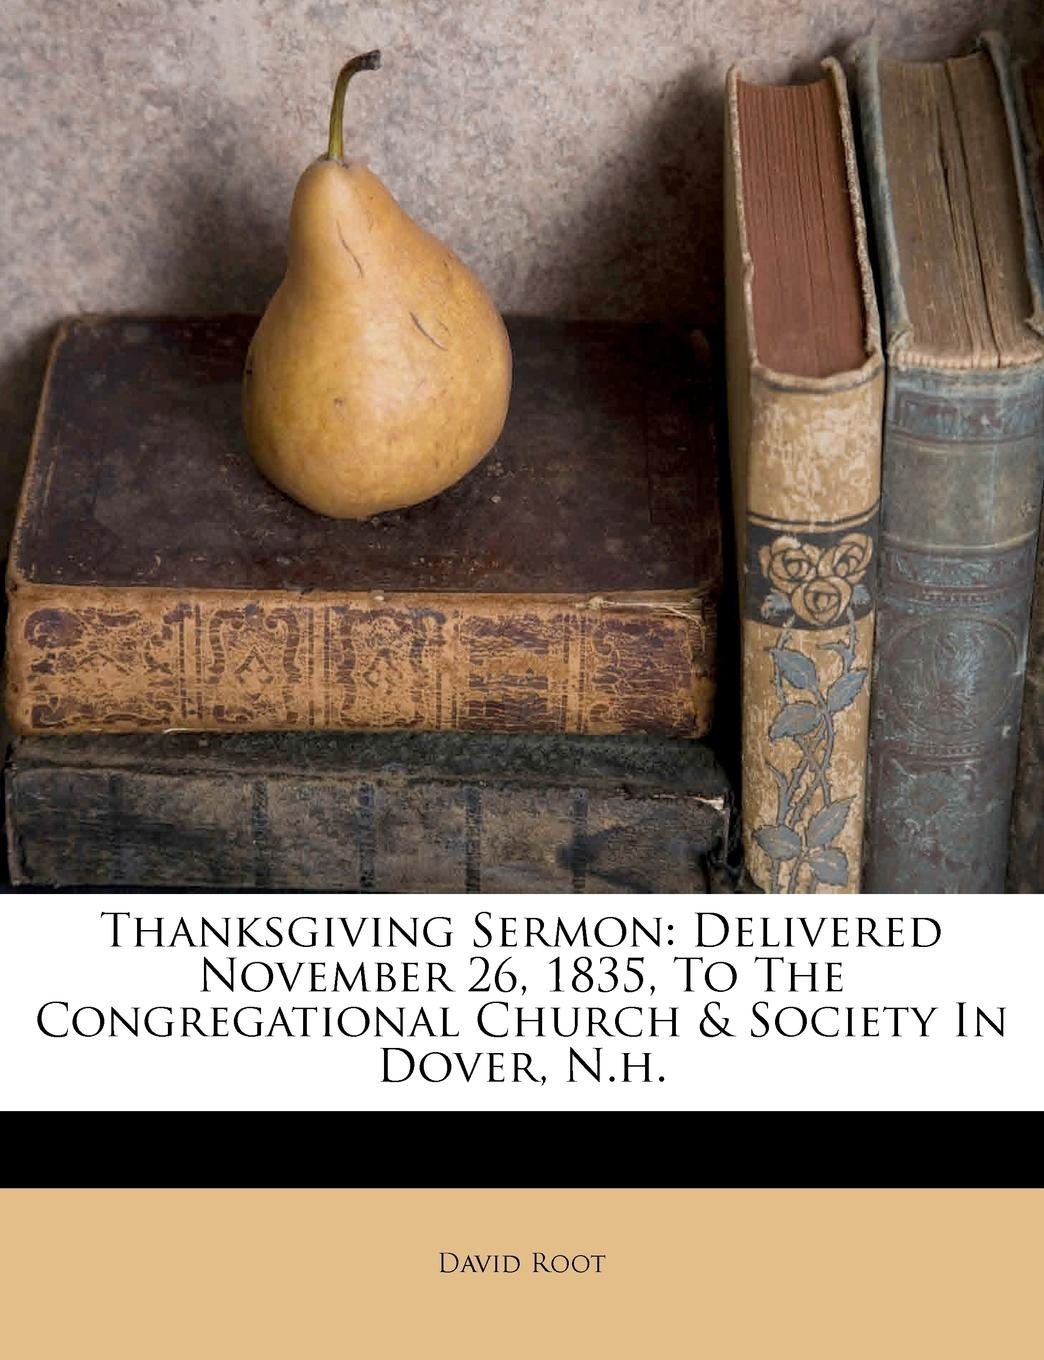 Download Thanksgiving Sermon: Delivered November 26, 1835, To The Congregational Church & Society In Dover, N.h. PDF